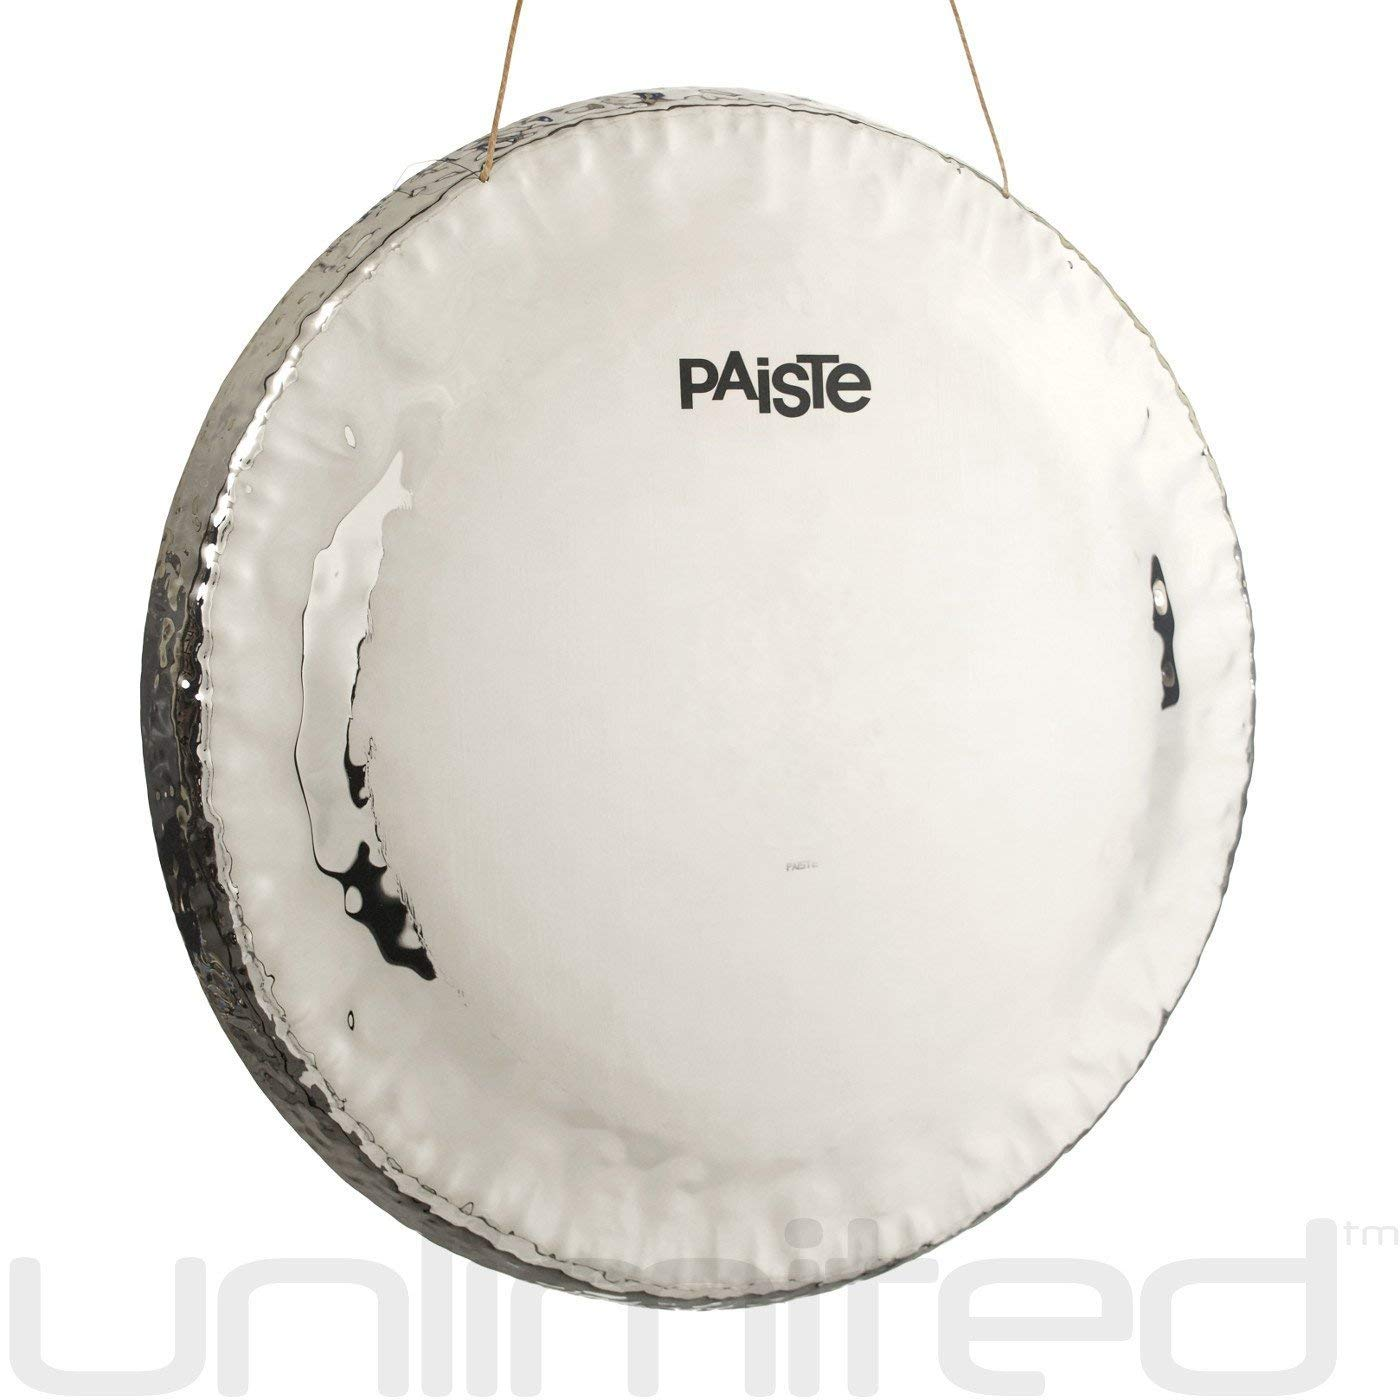 Paiste Symphonic Gong on Round Orchestra Stand with Mallet Combos